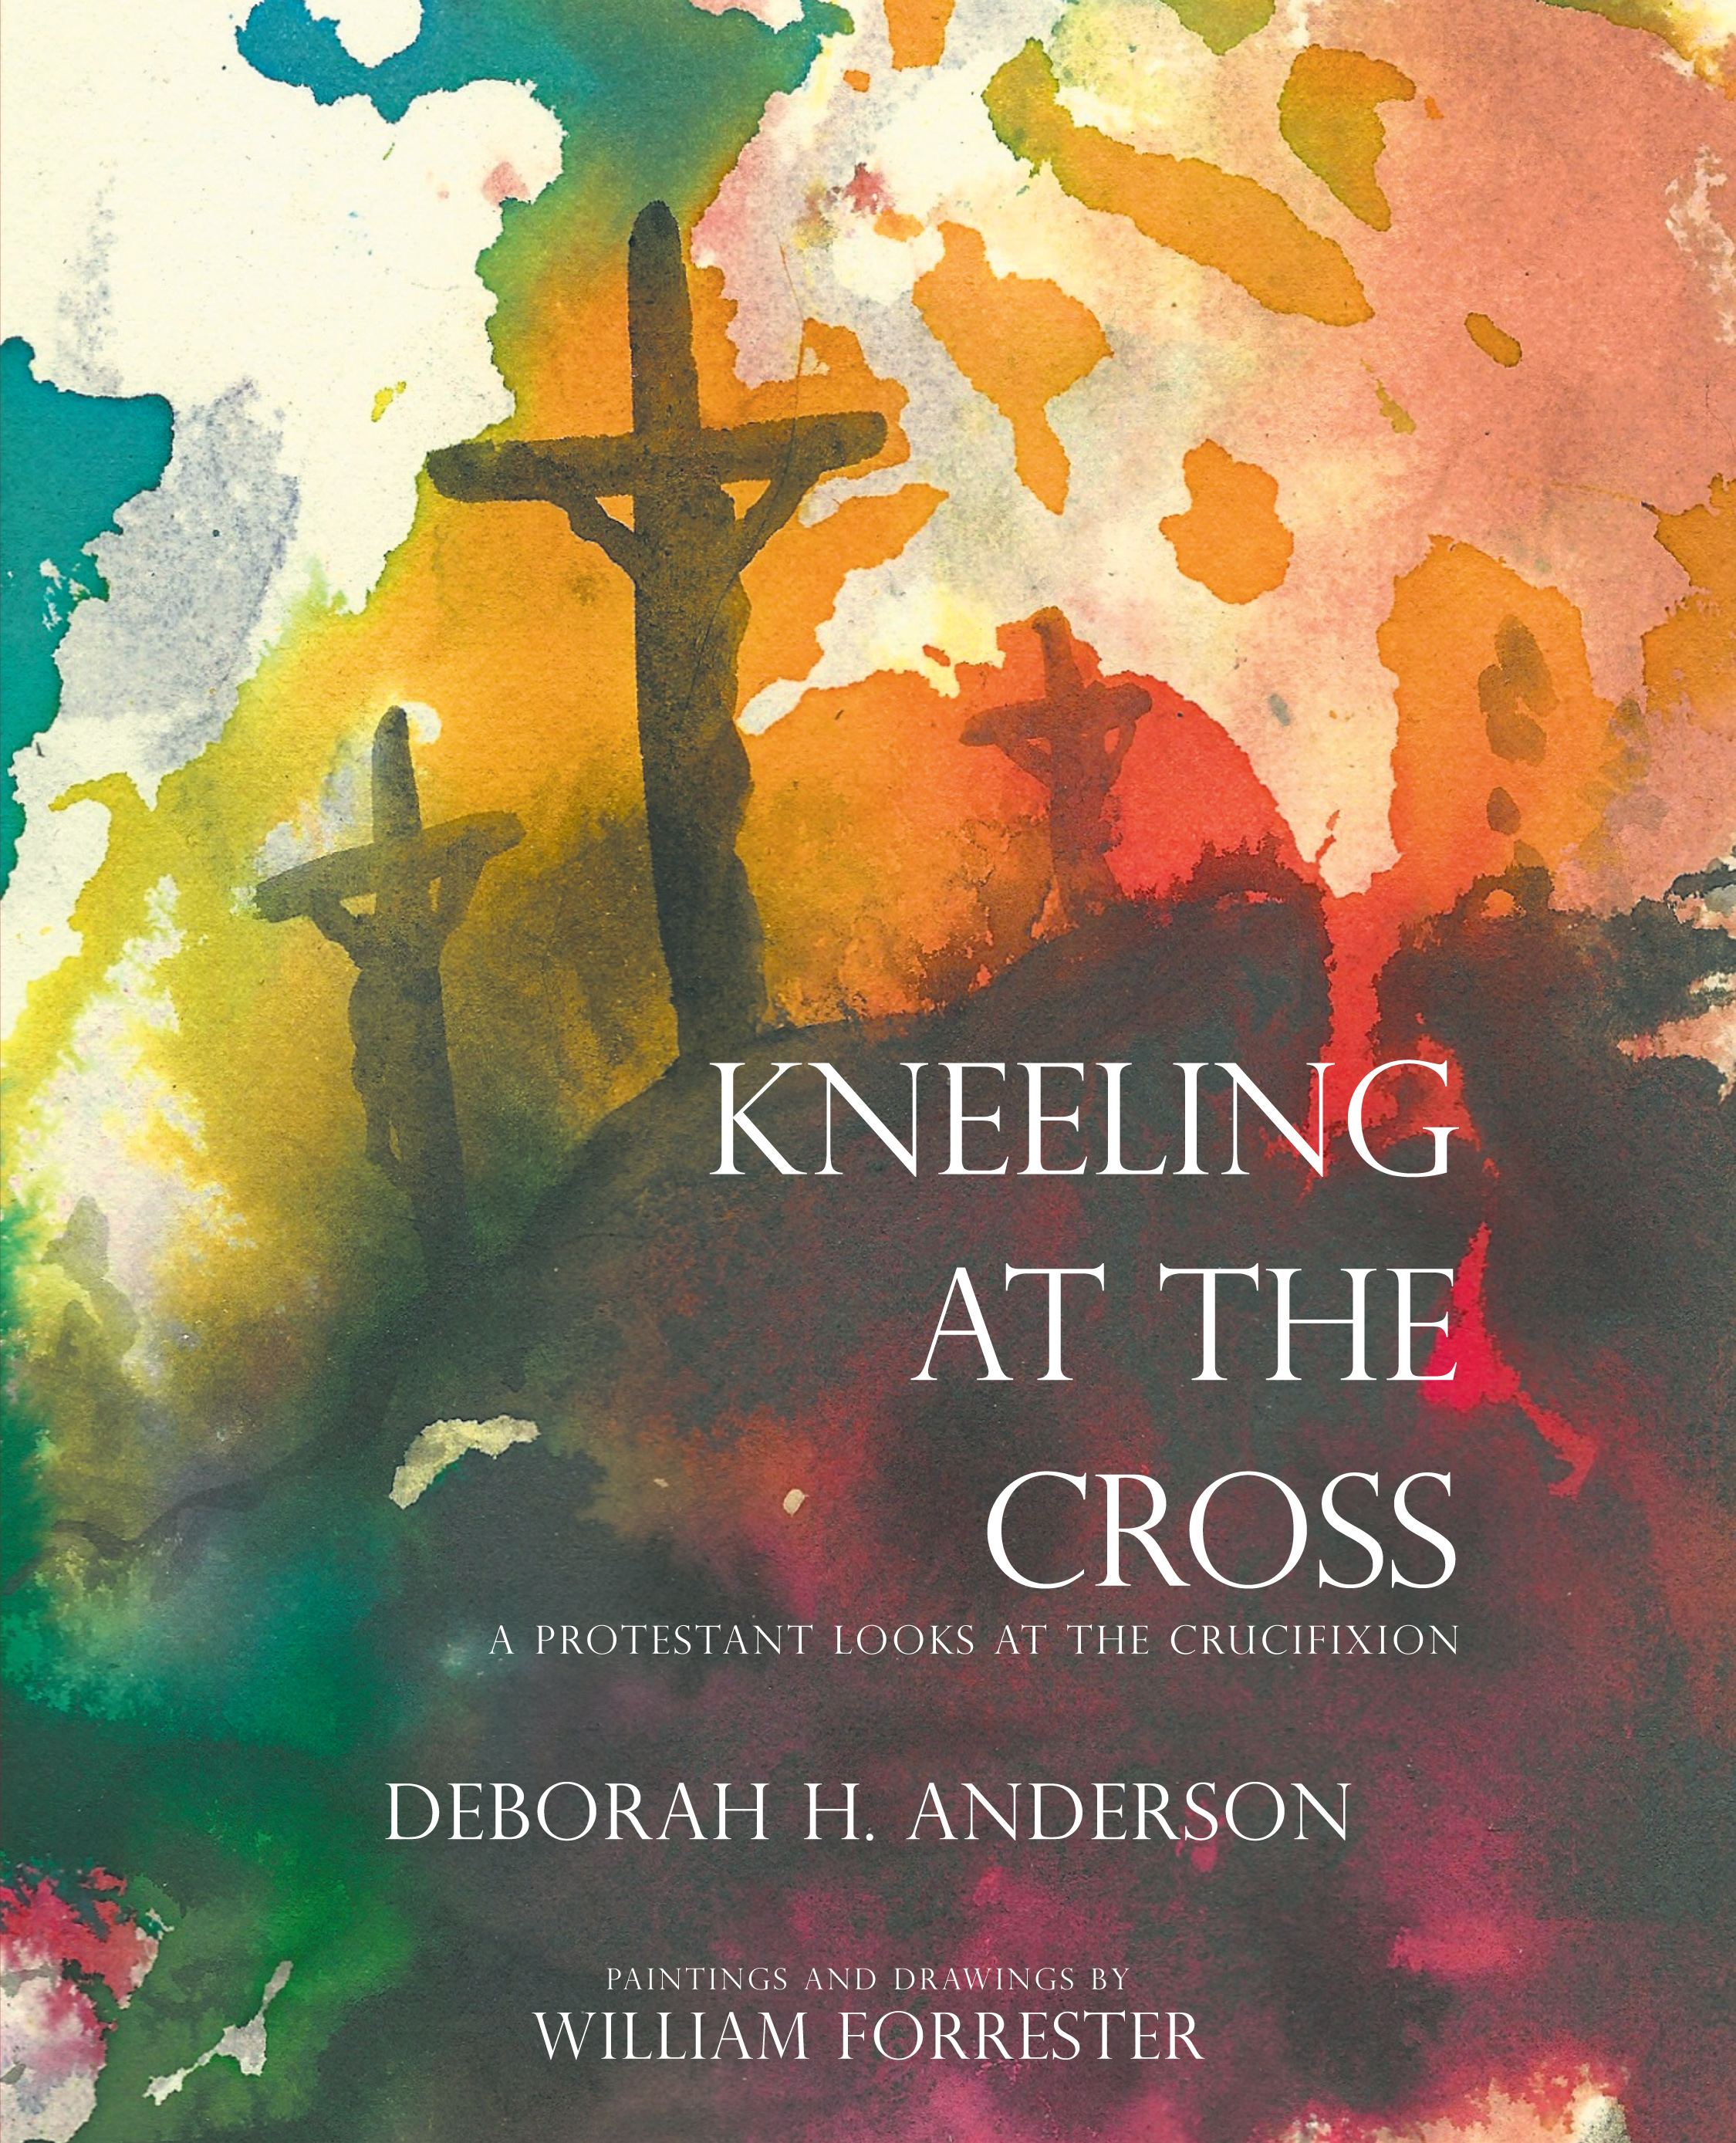 Kneeling at the cross cover art